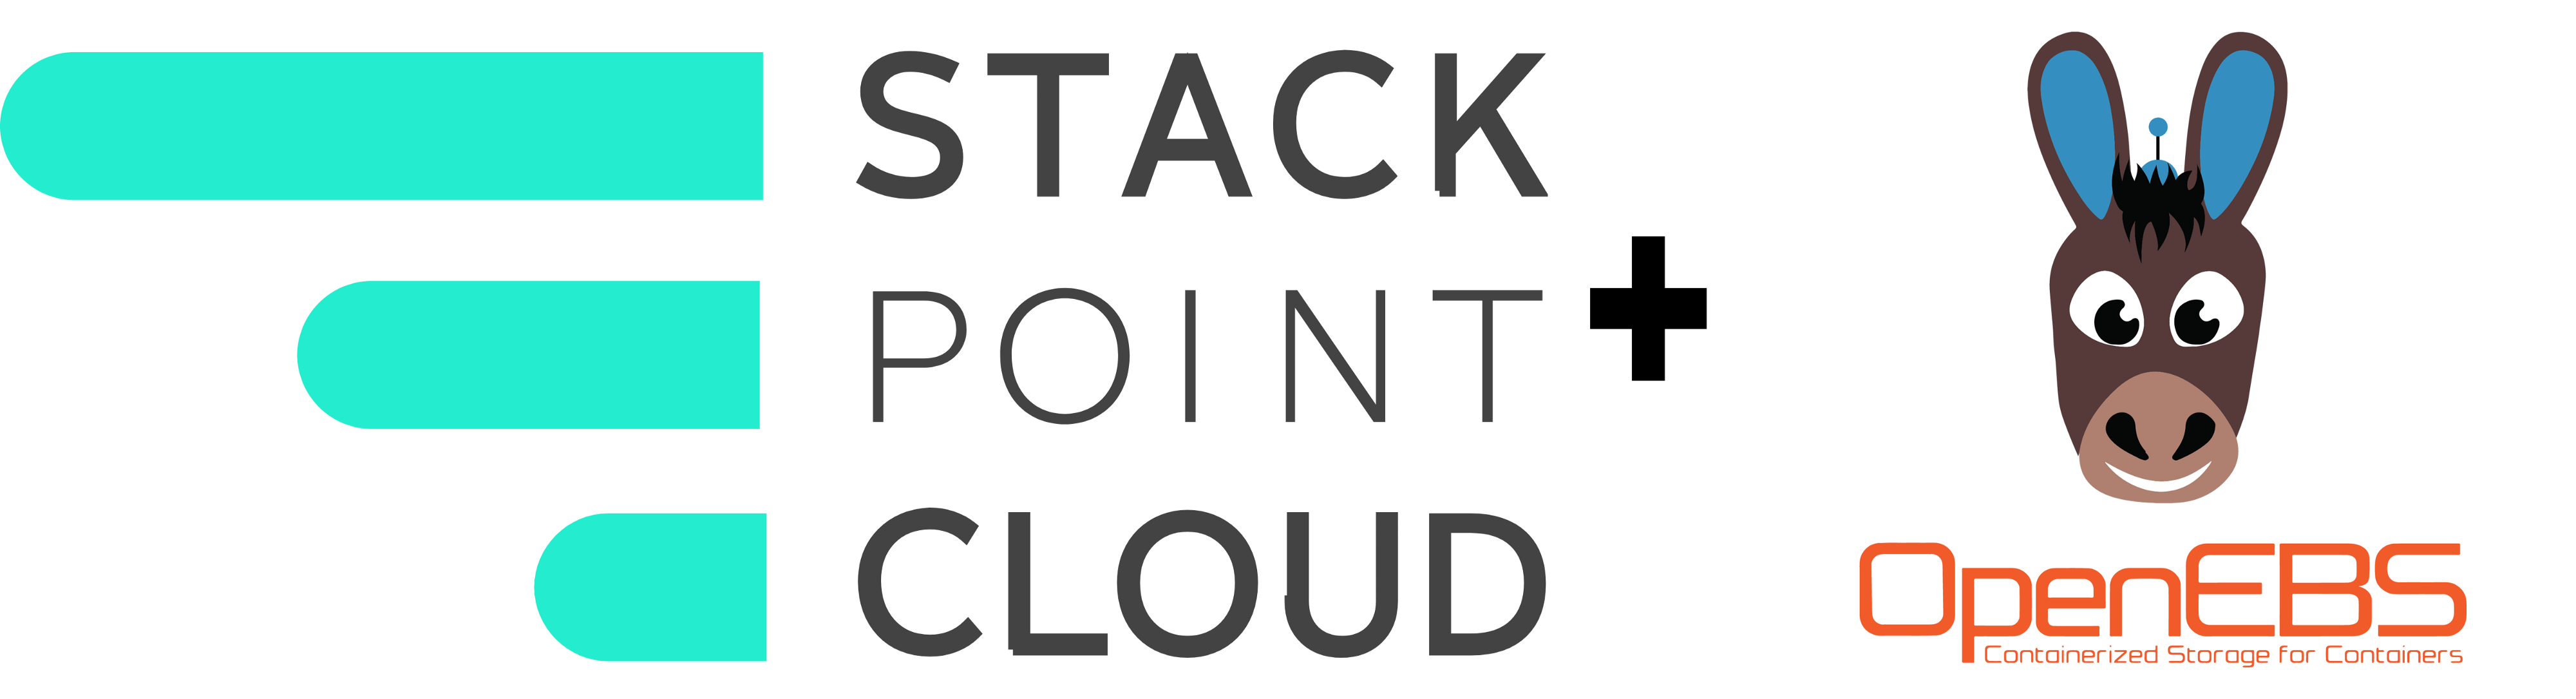 Install OpenEBS using StackPointCloud Trusted Charts